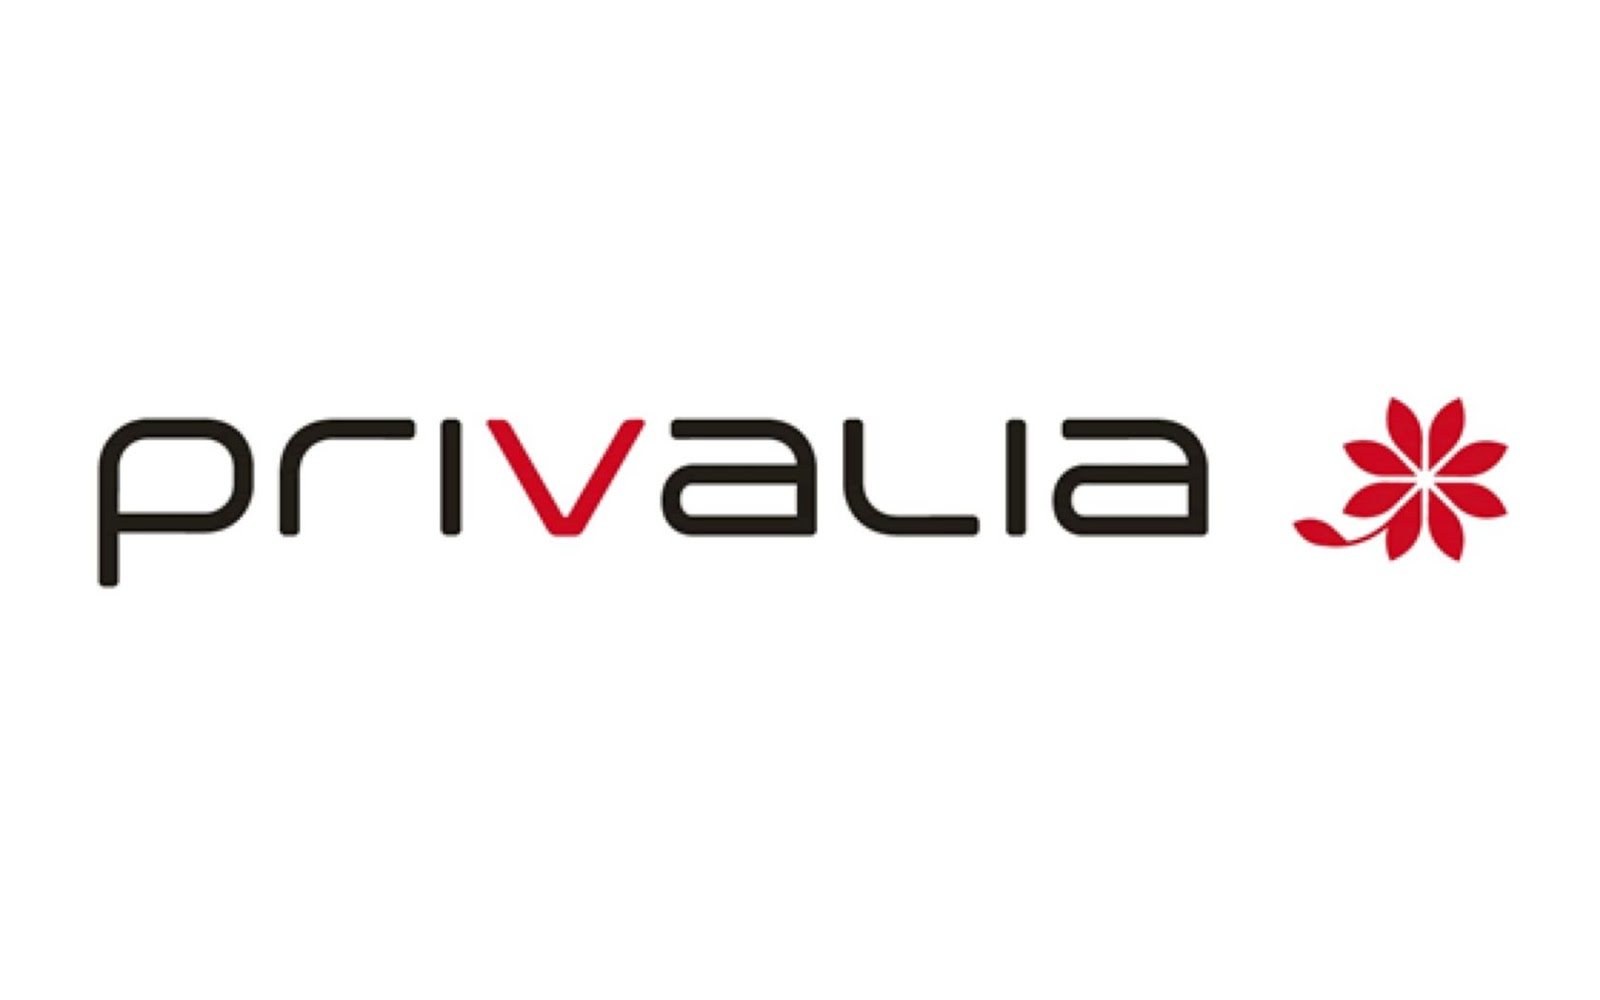 Privalia is an online private sales club taking the world